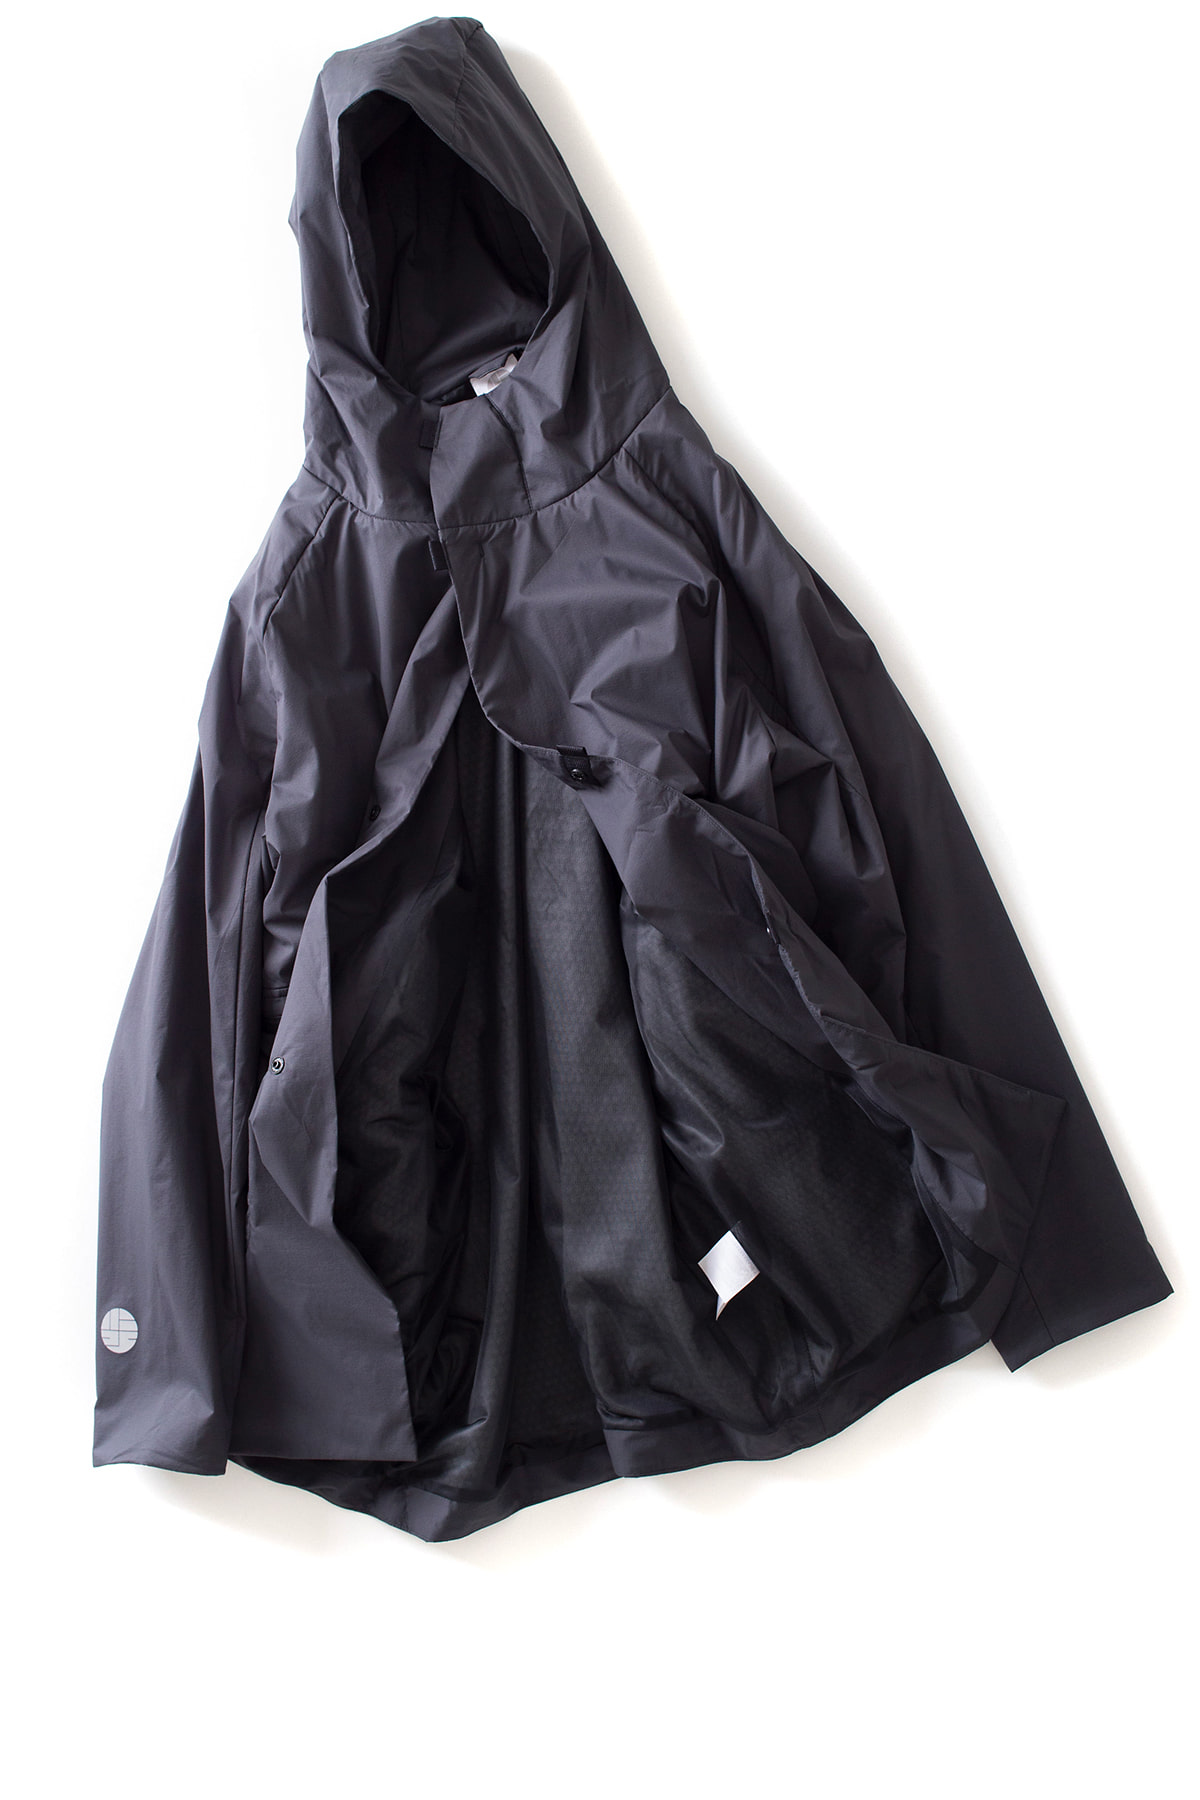 alk phenix : Zak Coat/ Hyper Stretch Light X α (Charcoal Grey)